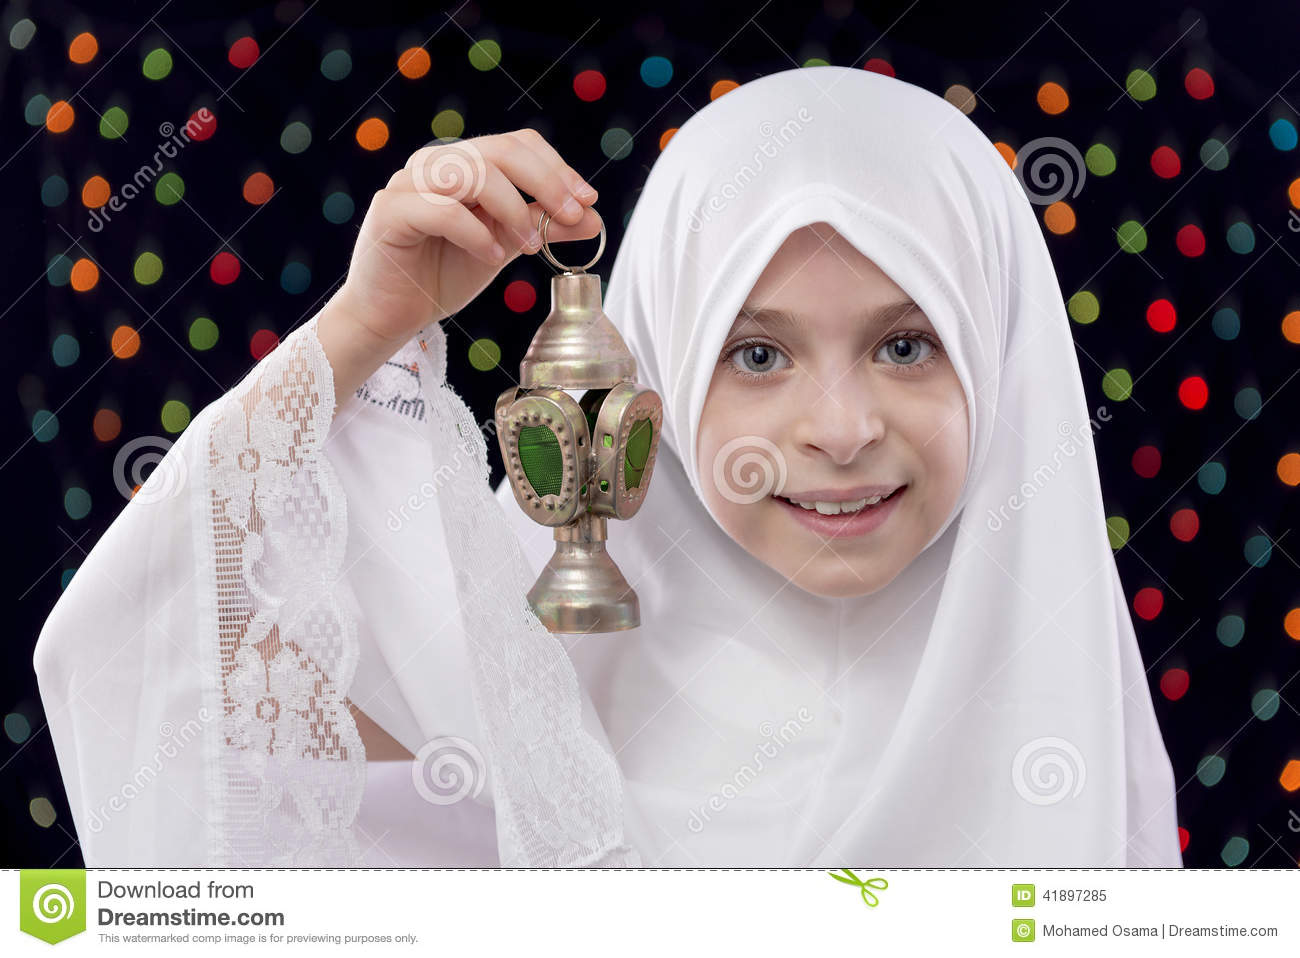 elsah muslim girl personals Muslim meet is the best place to start if you are looking to meet muslim singles from all types of backgrounds and nationalities join now, connect with real muslims, muslim meet.